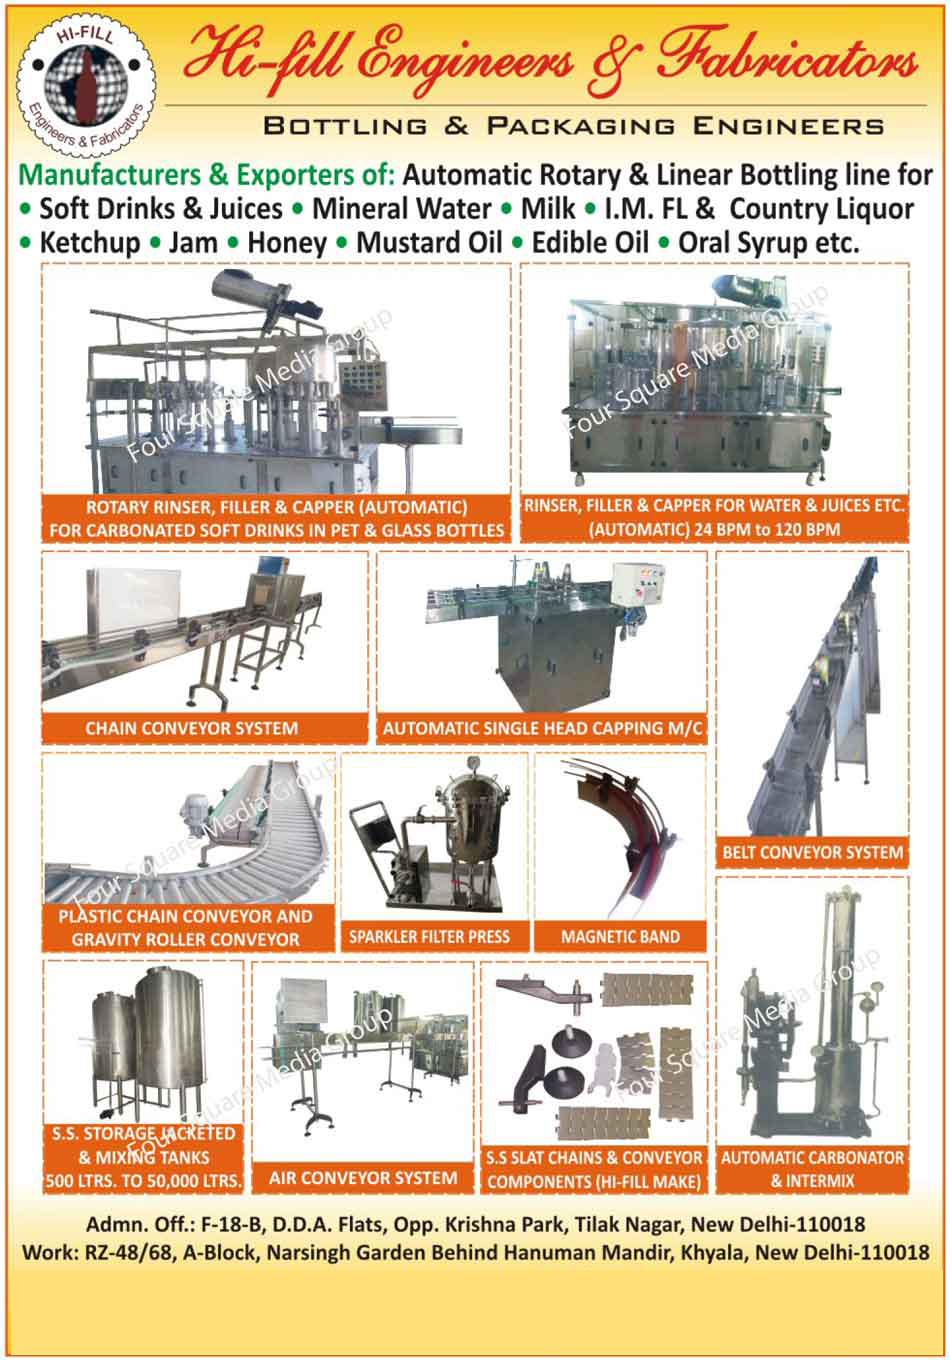 Bottling Plants, Bottling Machines, Rotary Rinser Filler, Rotary Rinser Capper, Carbonator, SS Slat Chains, SS Slat Conveyor Components, Stainless Steel Slat Chains, Stainless Steel Conveyor Components, Plastic Chain Conveyor with Gravity Roller Conveyor, Belt conveyor,Plastic Chain Conveyor, Chain Conveyor Systems, Automatic Crown Cappings, Belt Conveyor Systems, Sparkler Filter Press, Air Conveyor Systems, Automatic Carbonators, Automatic Intermix, SS Storage Jacketed Tanks, Stainless Steel Storage Jacketed Tanks, SS Storage Mixing Tanks, Stainless Steel Storage Mixing Tanks, Automatic Rotary Bottling Line, Automatic Linear Bottling Line, Magnetic Band, Automatic Single Hand Capping Machines